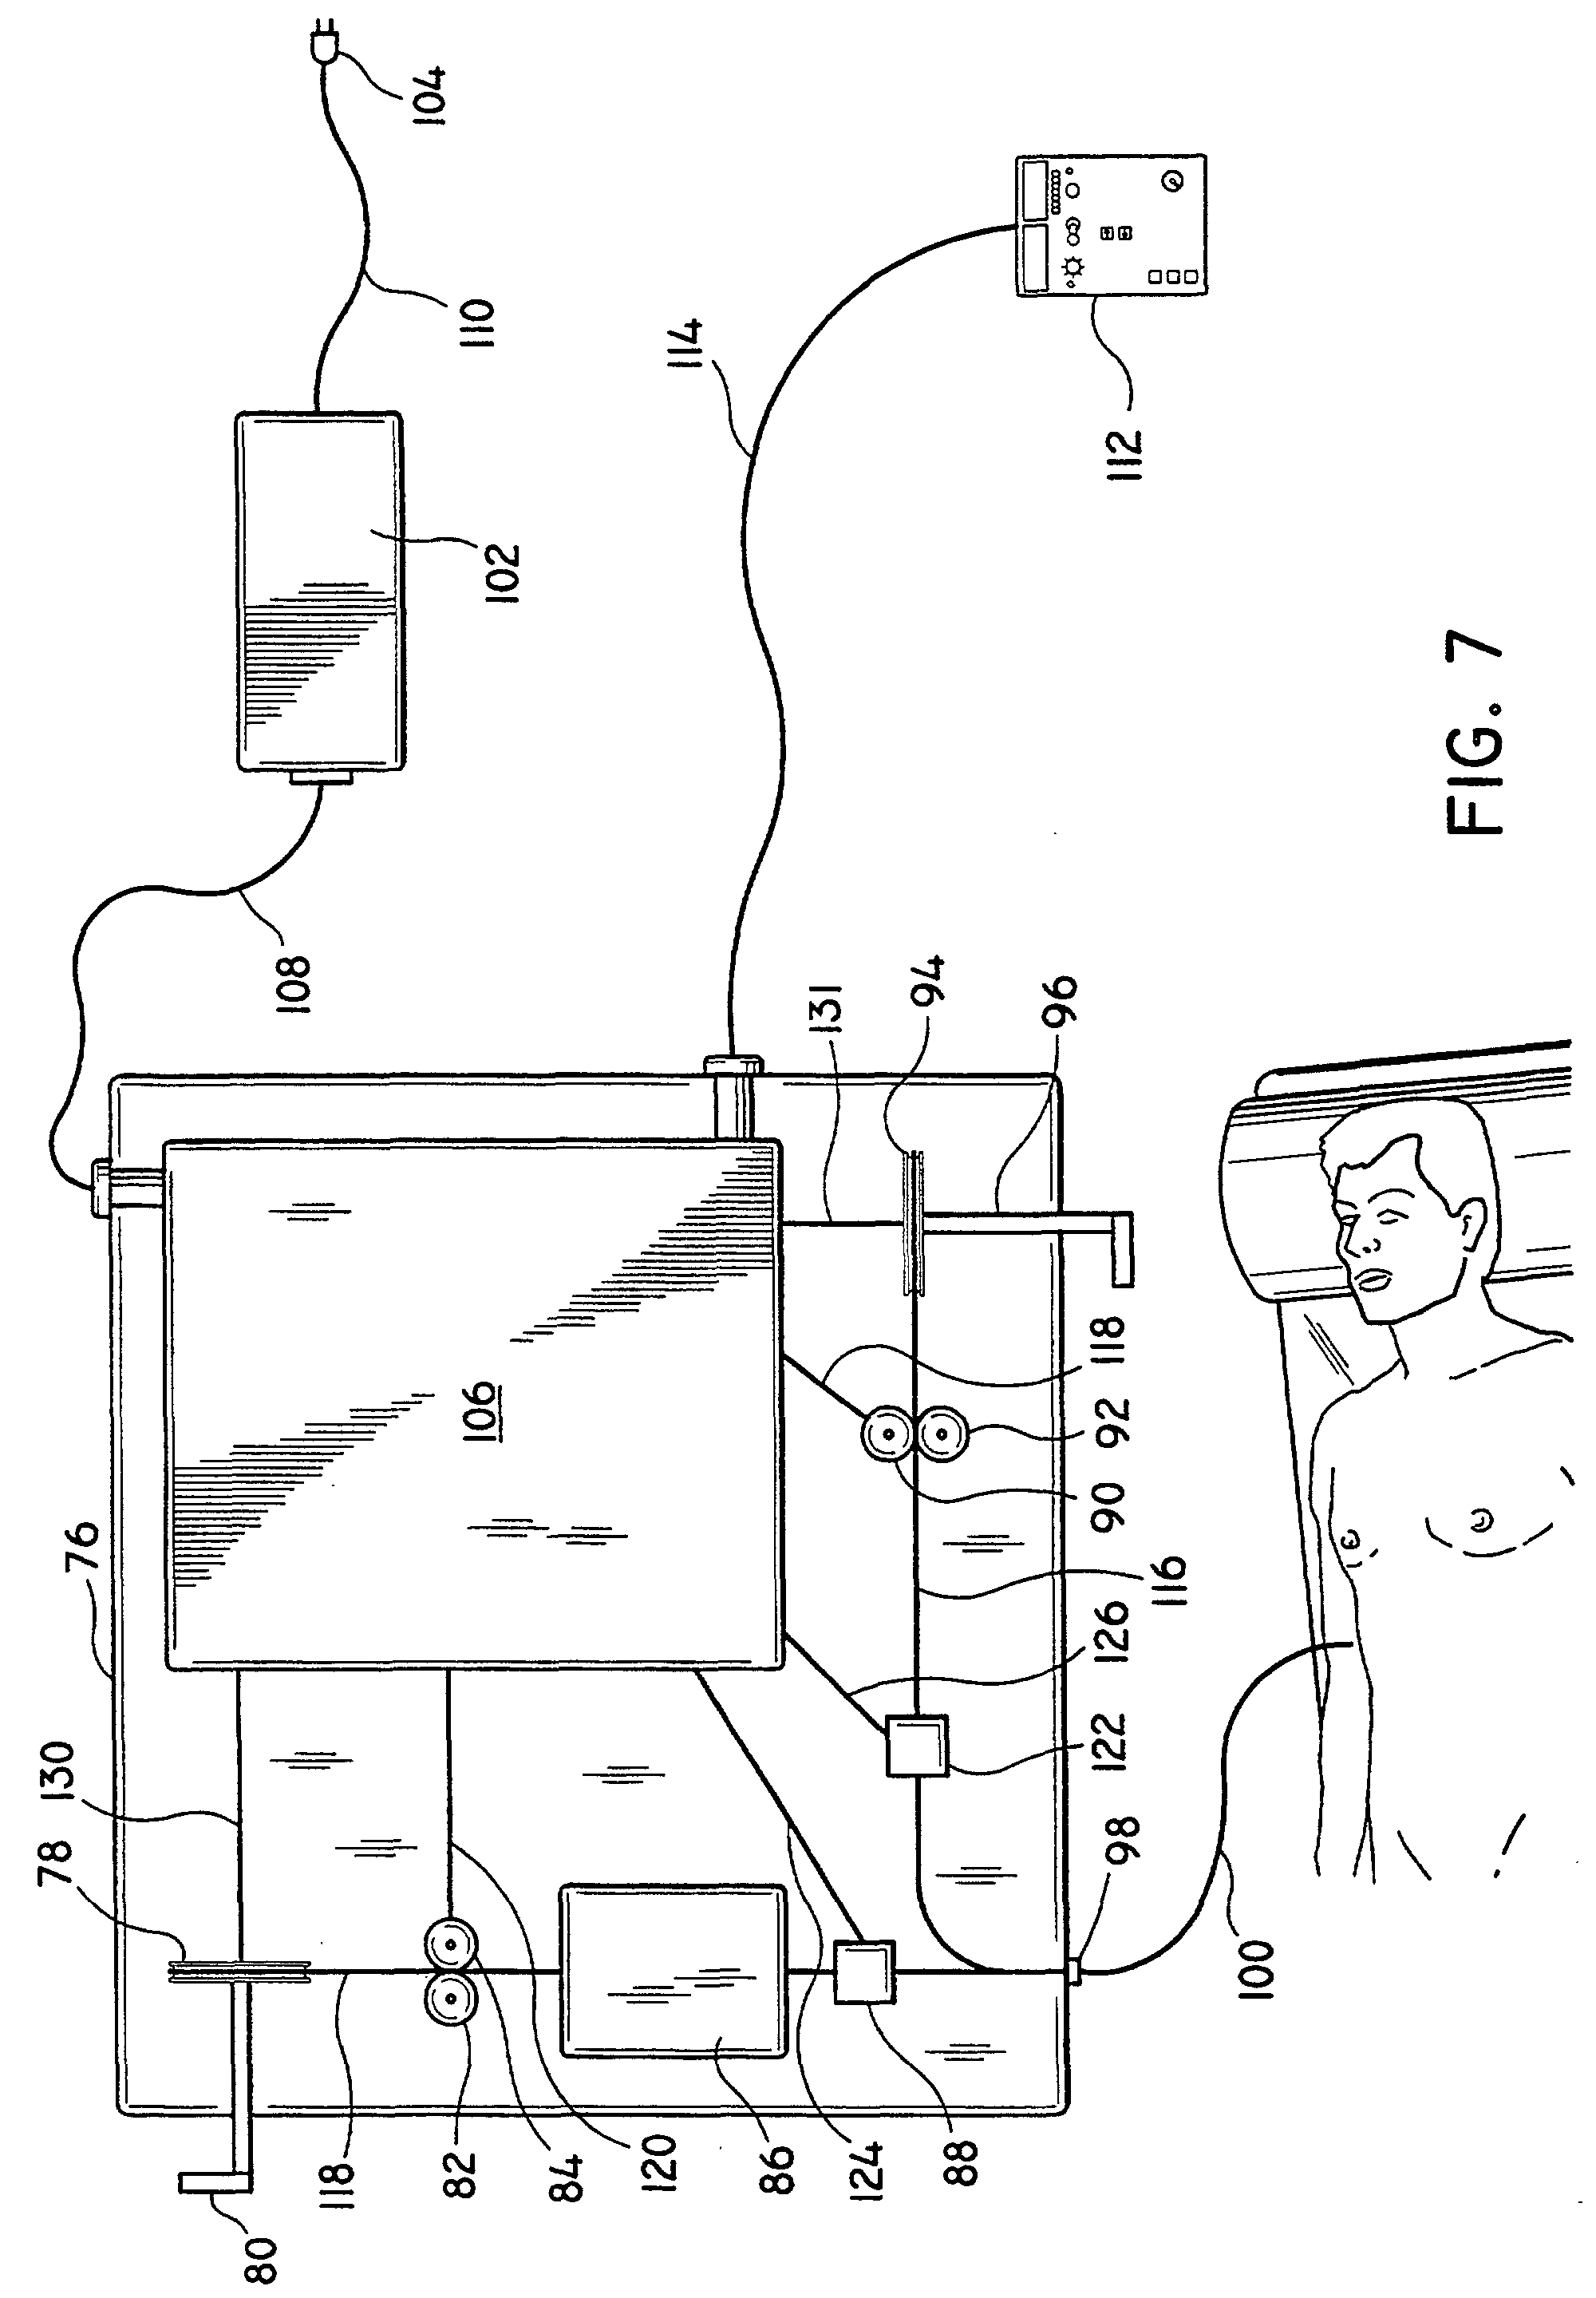 patent ep0791374b1 - afterloader provided with remote control unit